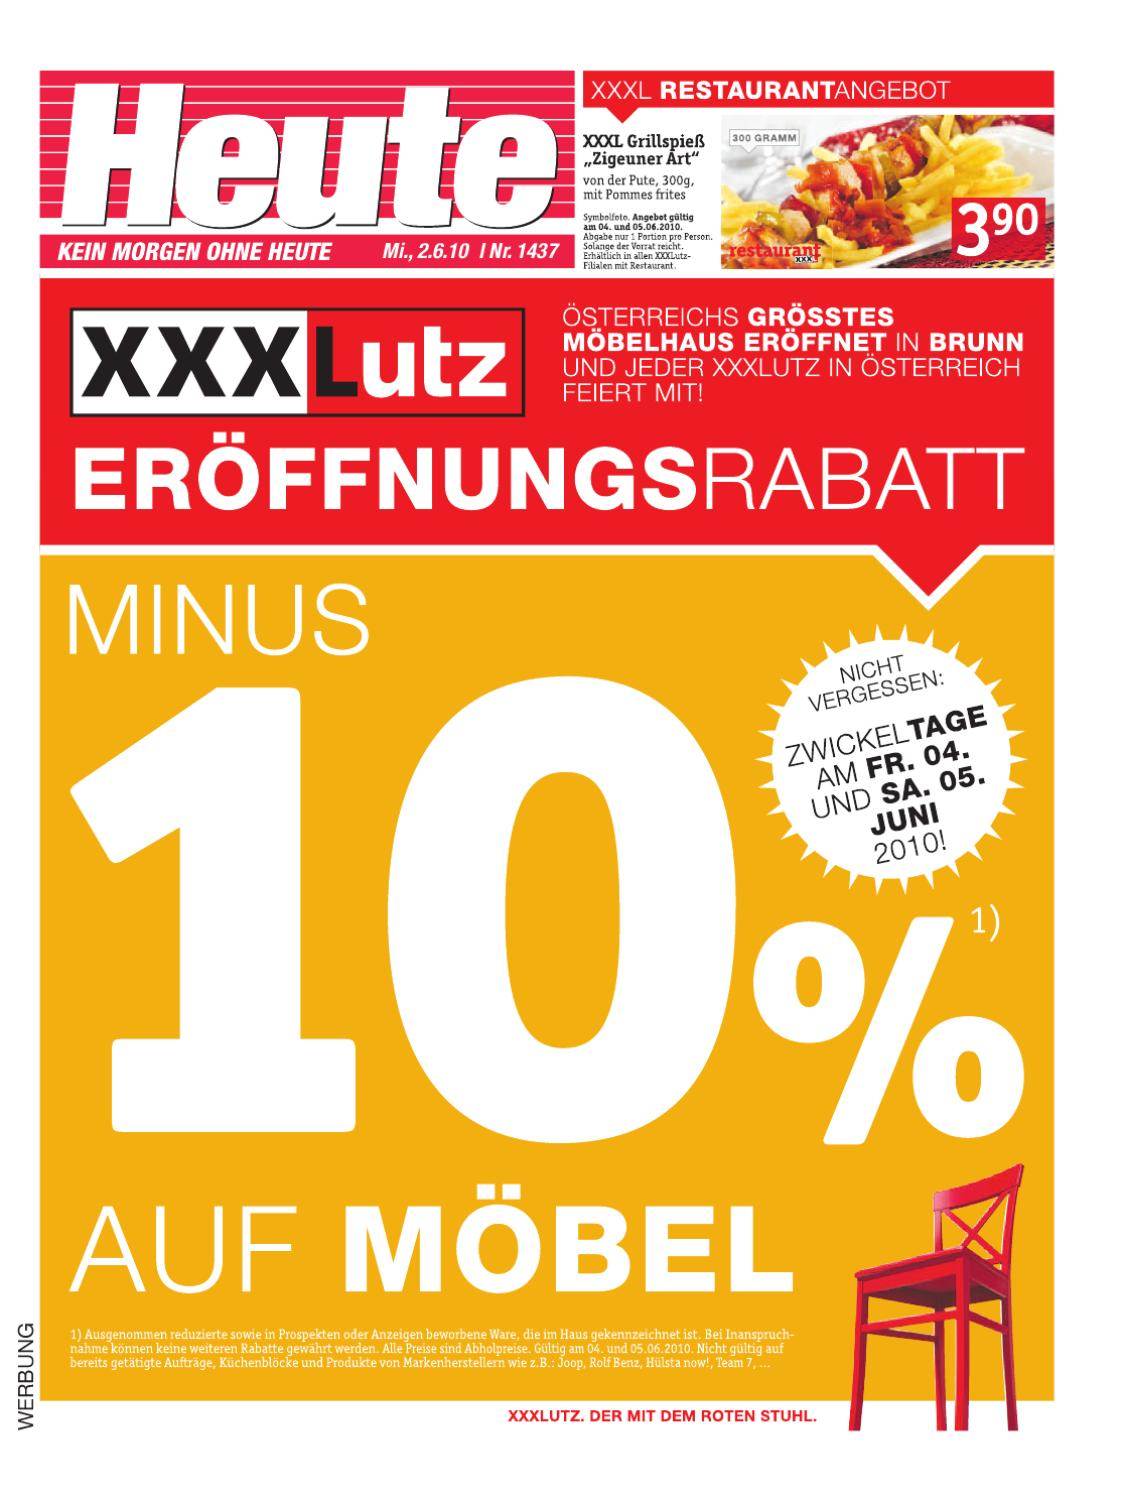 Tageszeitung Heute 100602 by CH ON - issuu